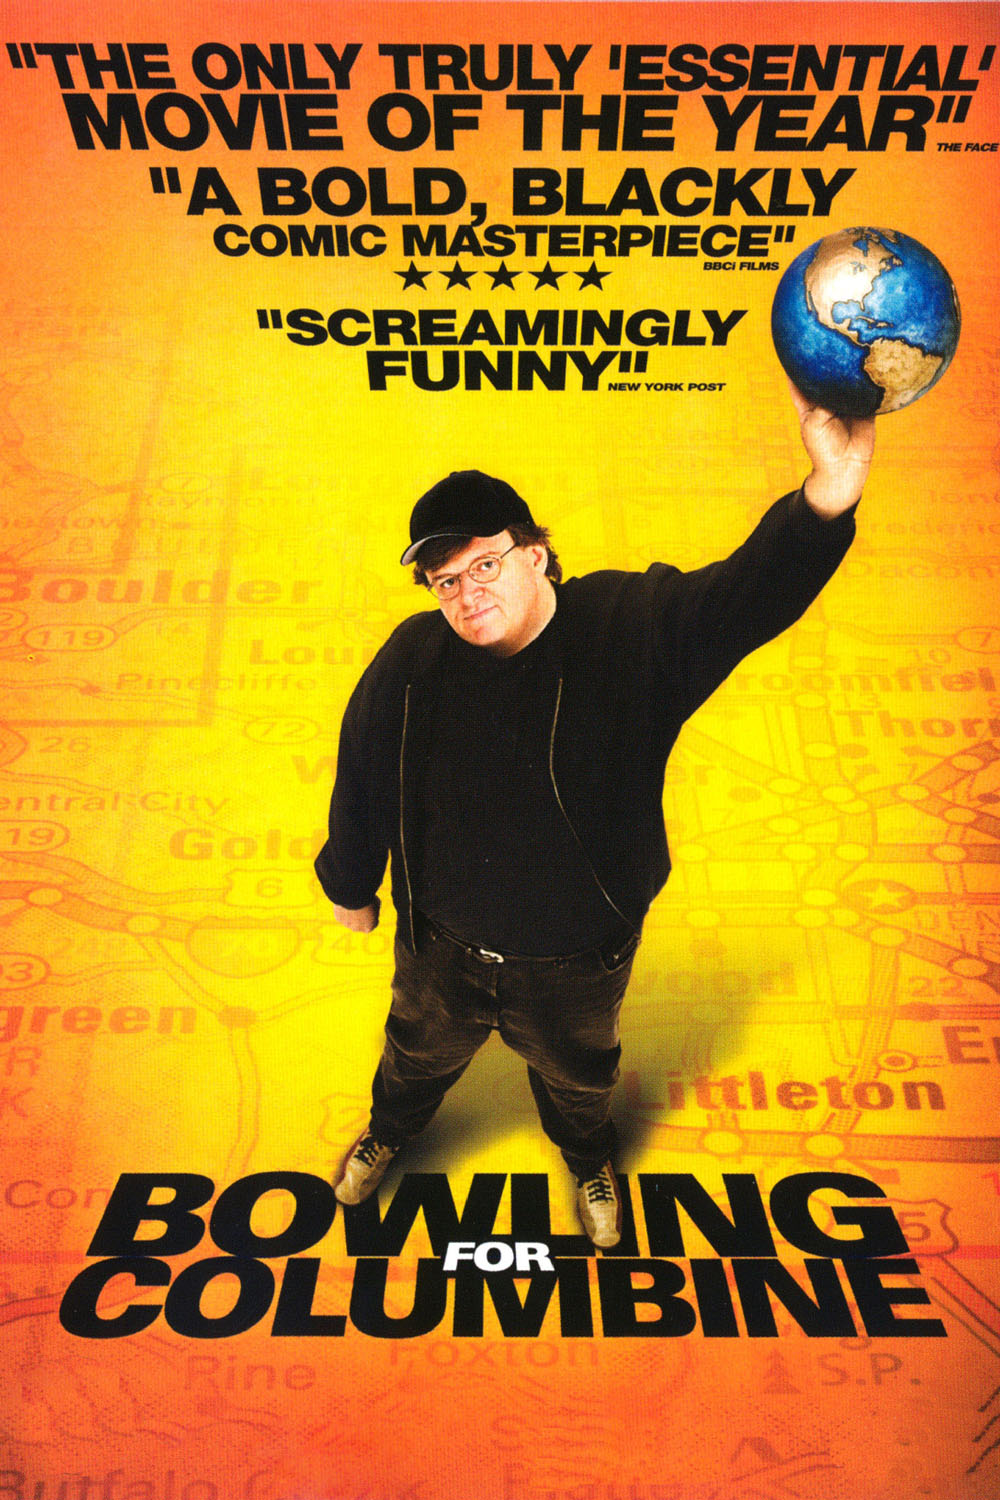 A review of the film bowling columbine